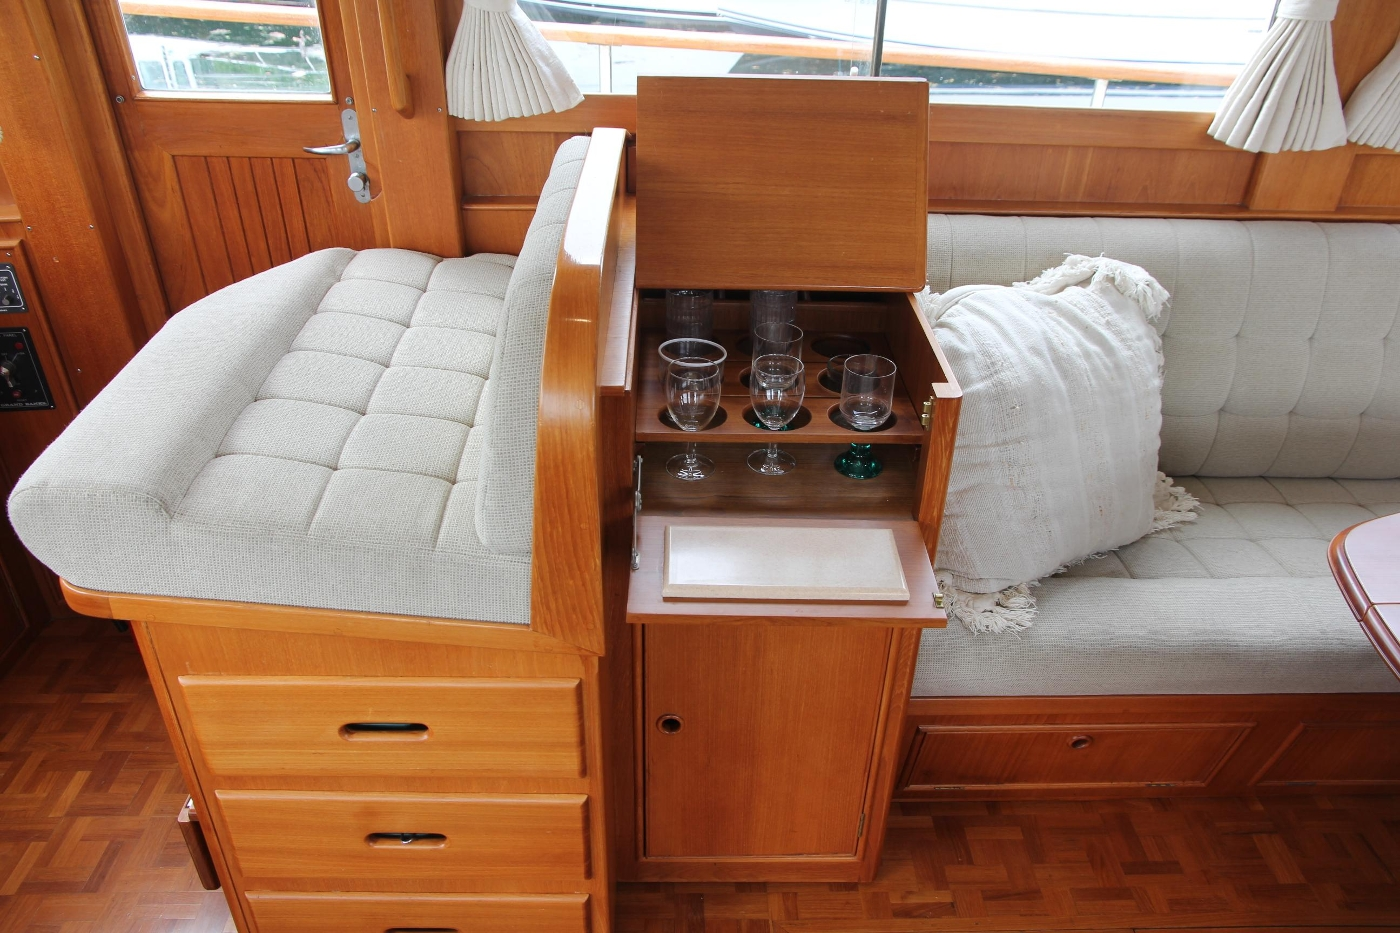 2001 Grand Banks 42 Classic, Helm Seat and Bar Cabinet